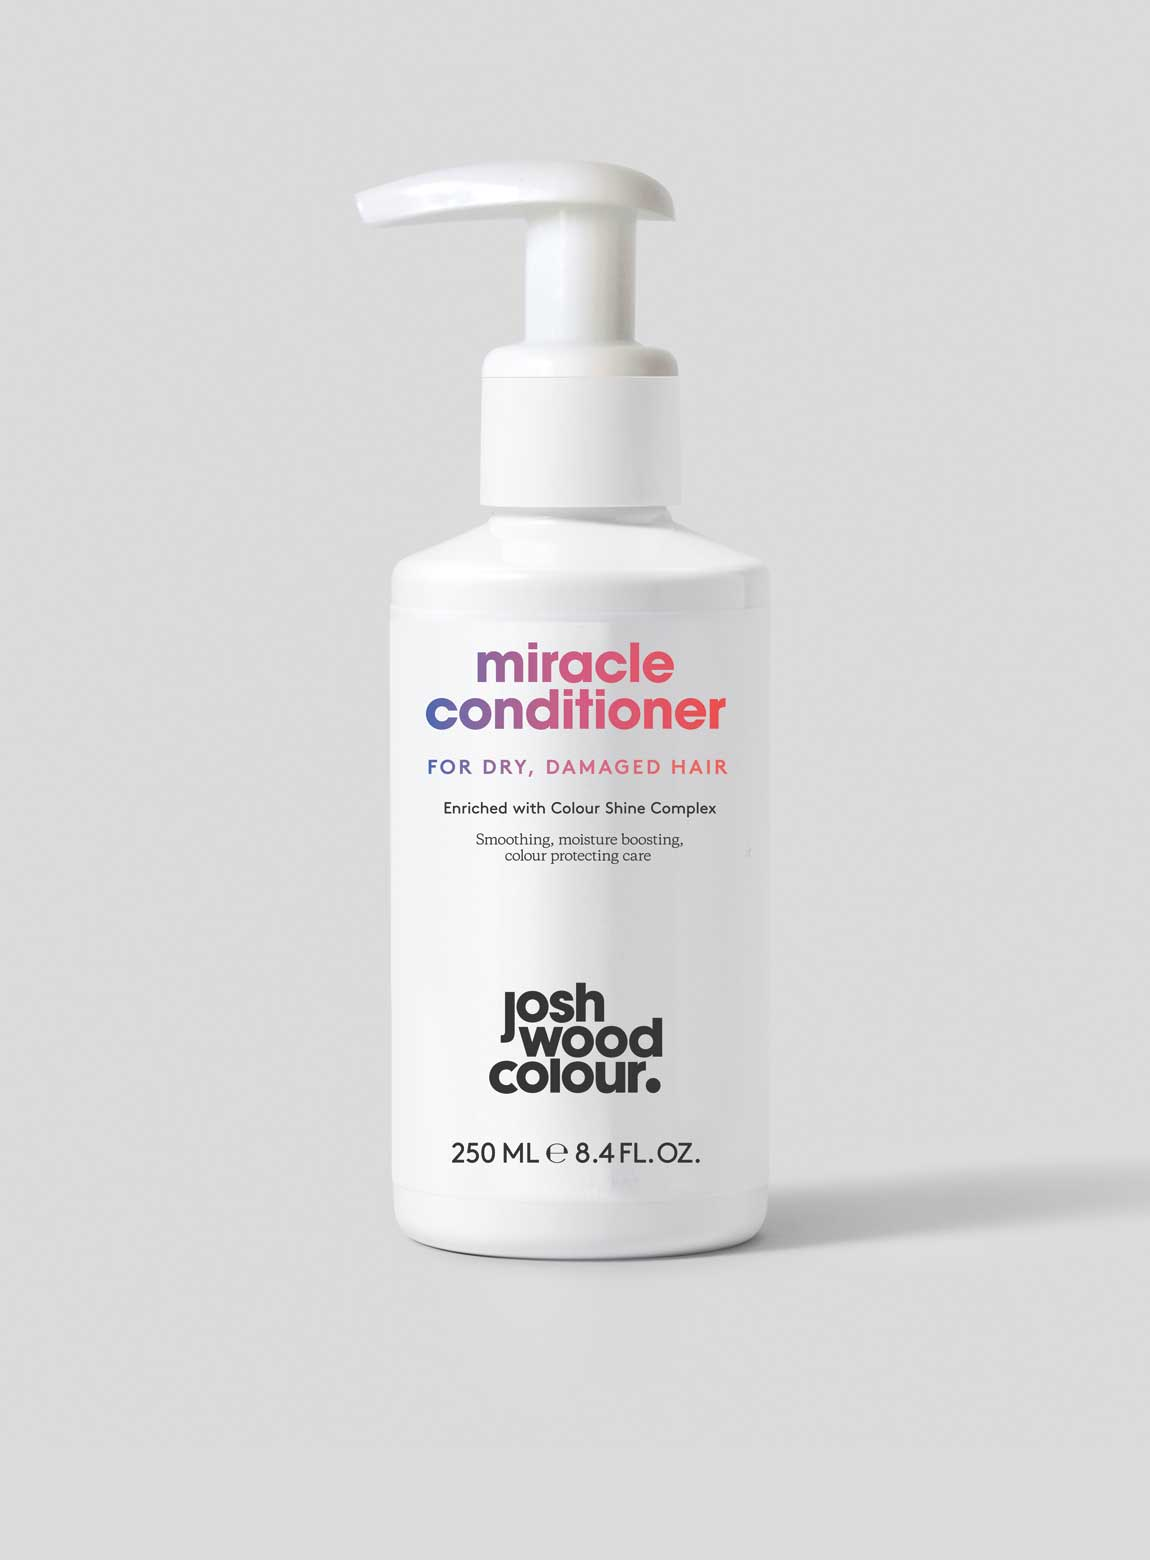 Miracle Conditioner for Dry, Damaged Hair